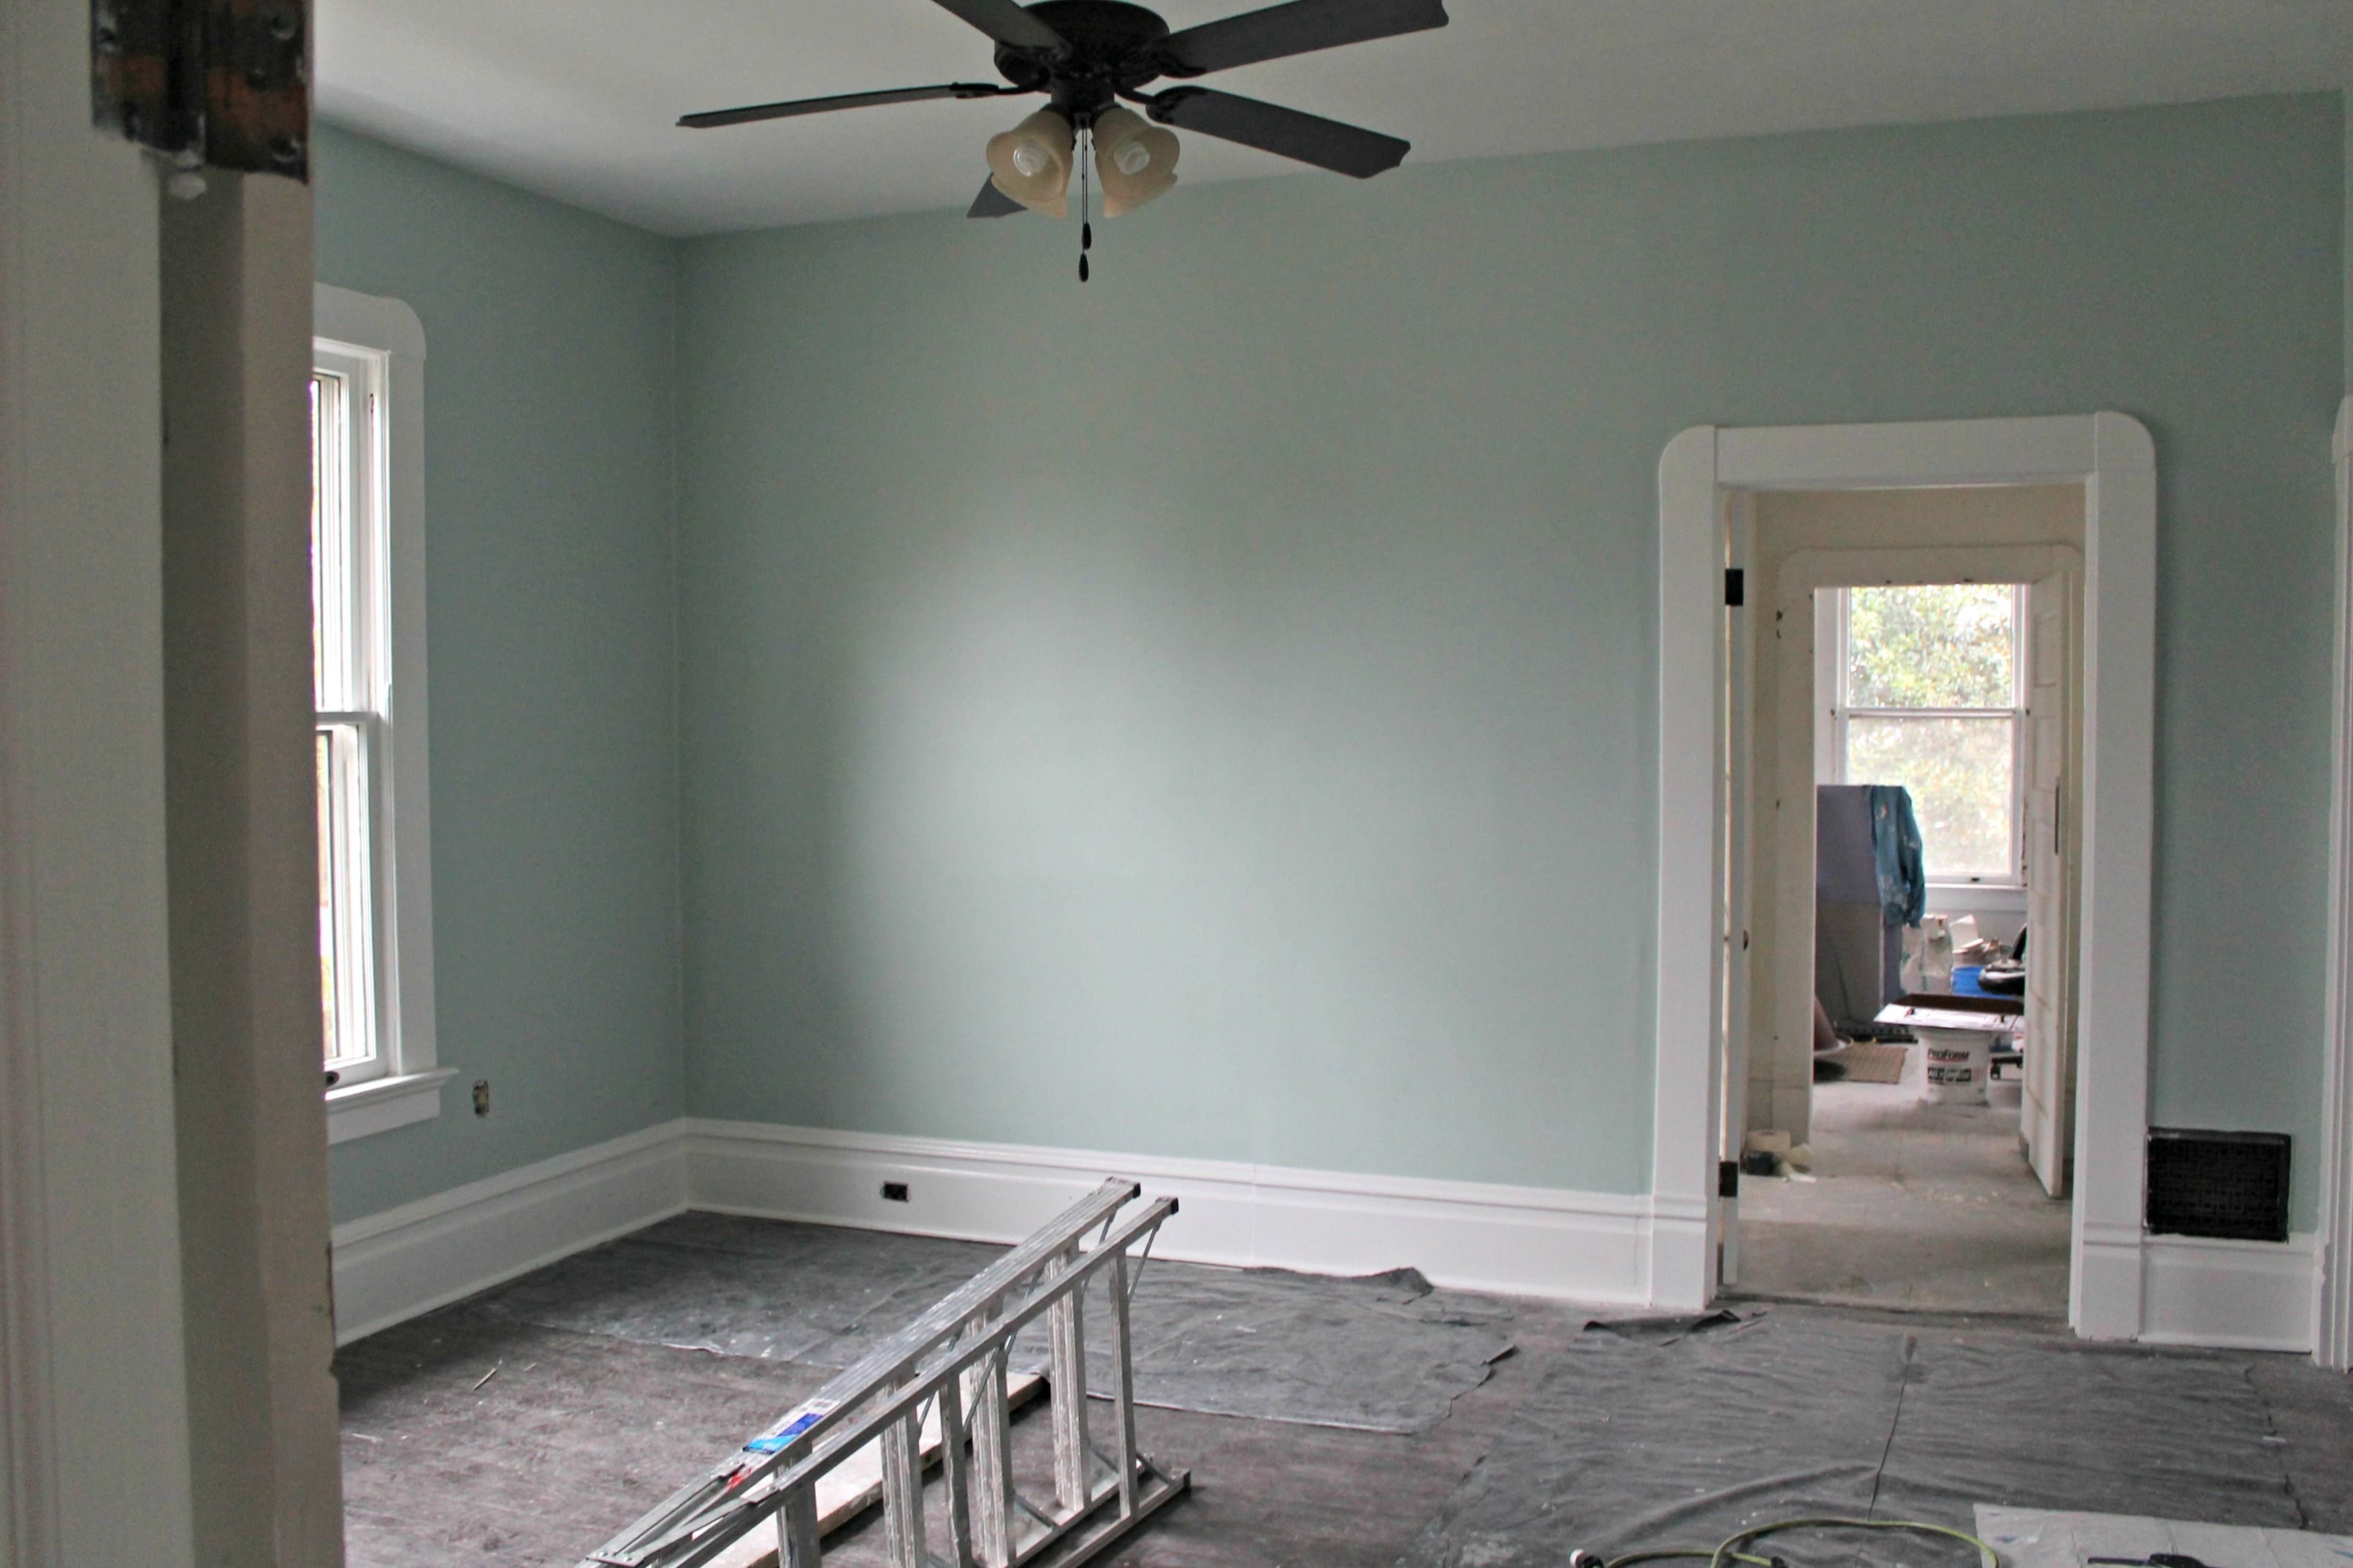 Sea Foam Paint Benjamin Moore Master Bath House Colors Seafoam Green Room Ideas Bathroom